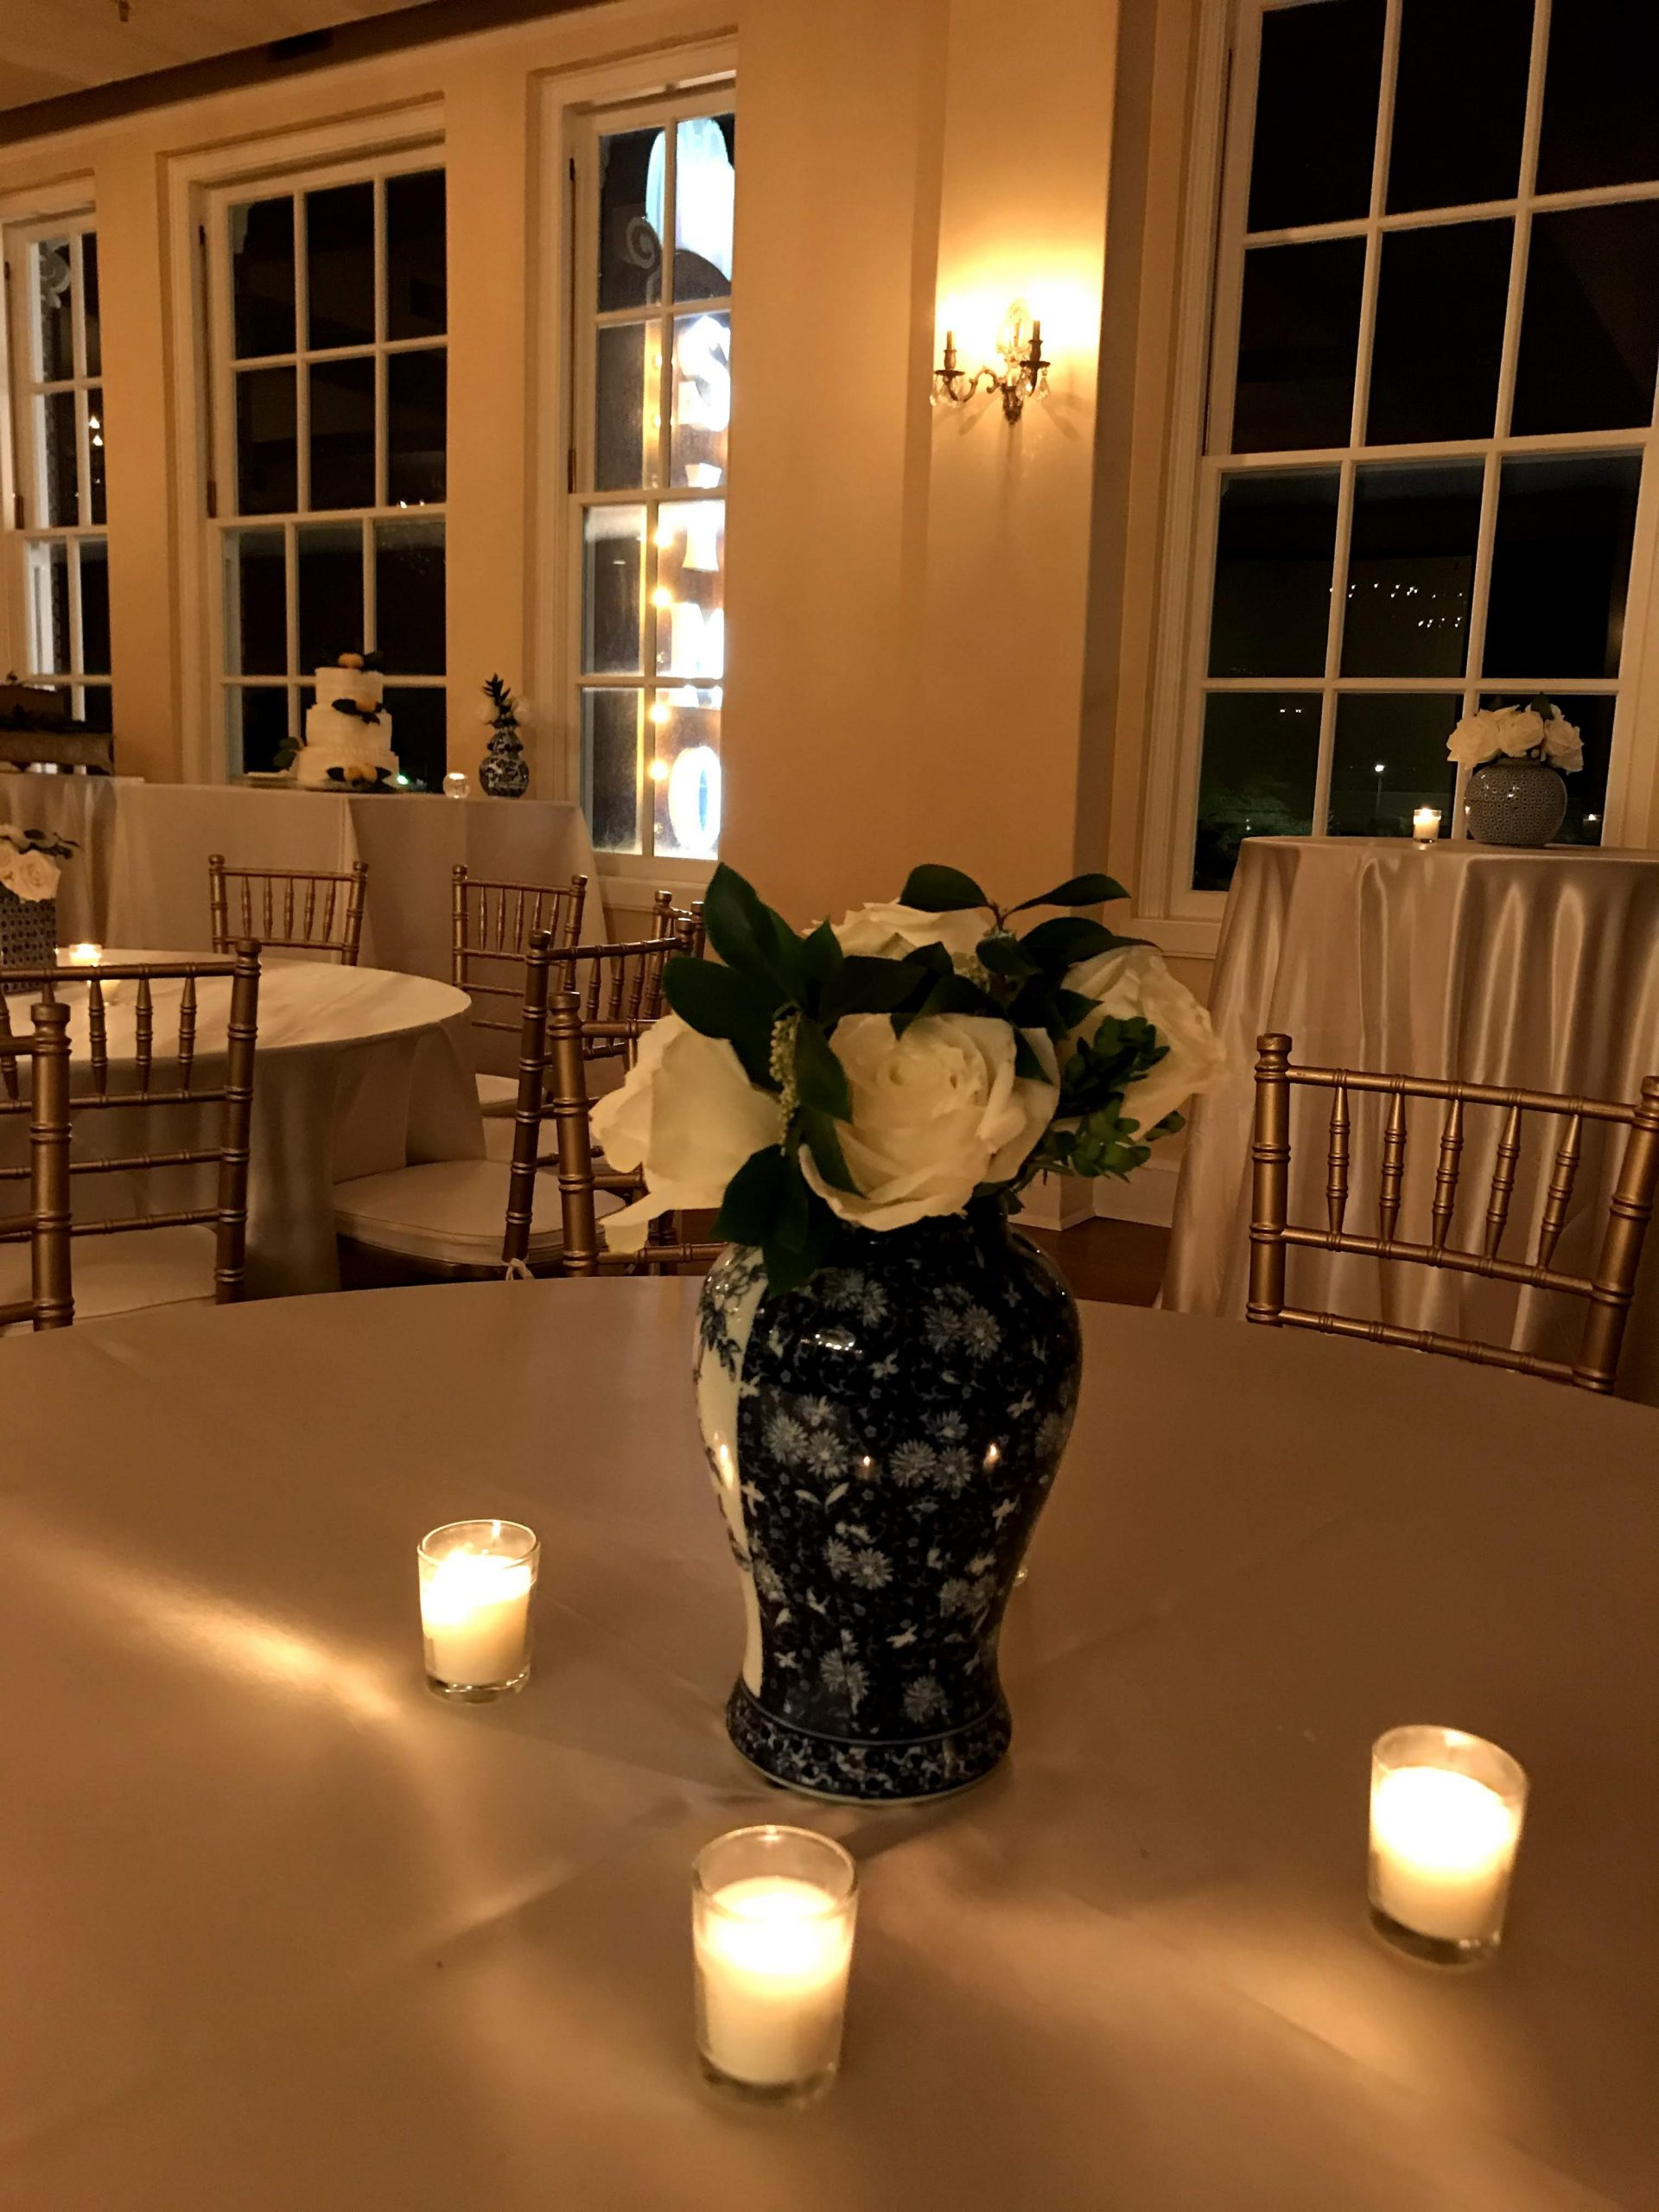 A blue vase centerpiece filled with white flower and surrounded by tea lights. In the background, the Simon marquee twinkles out the window.